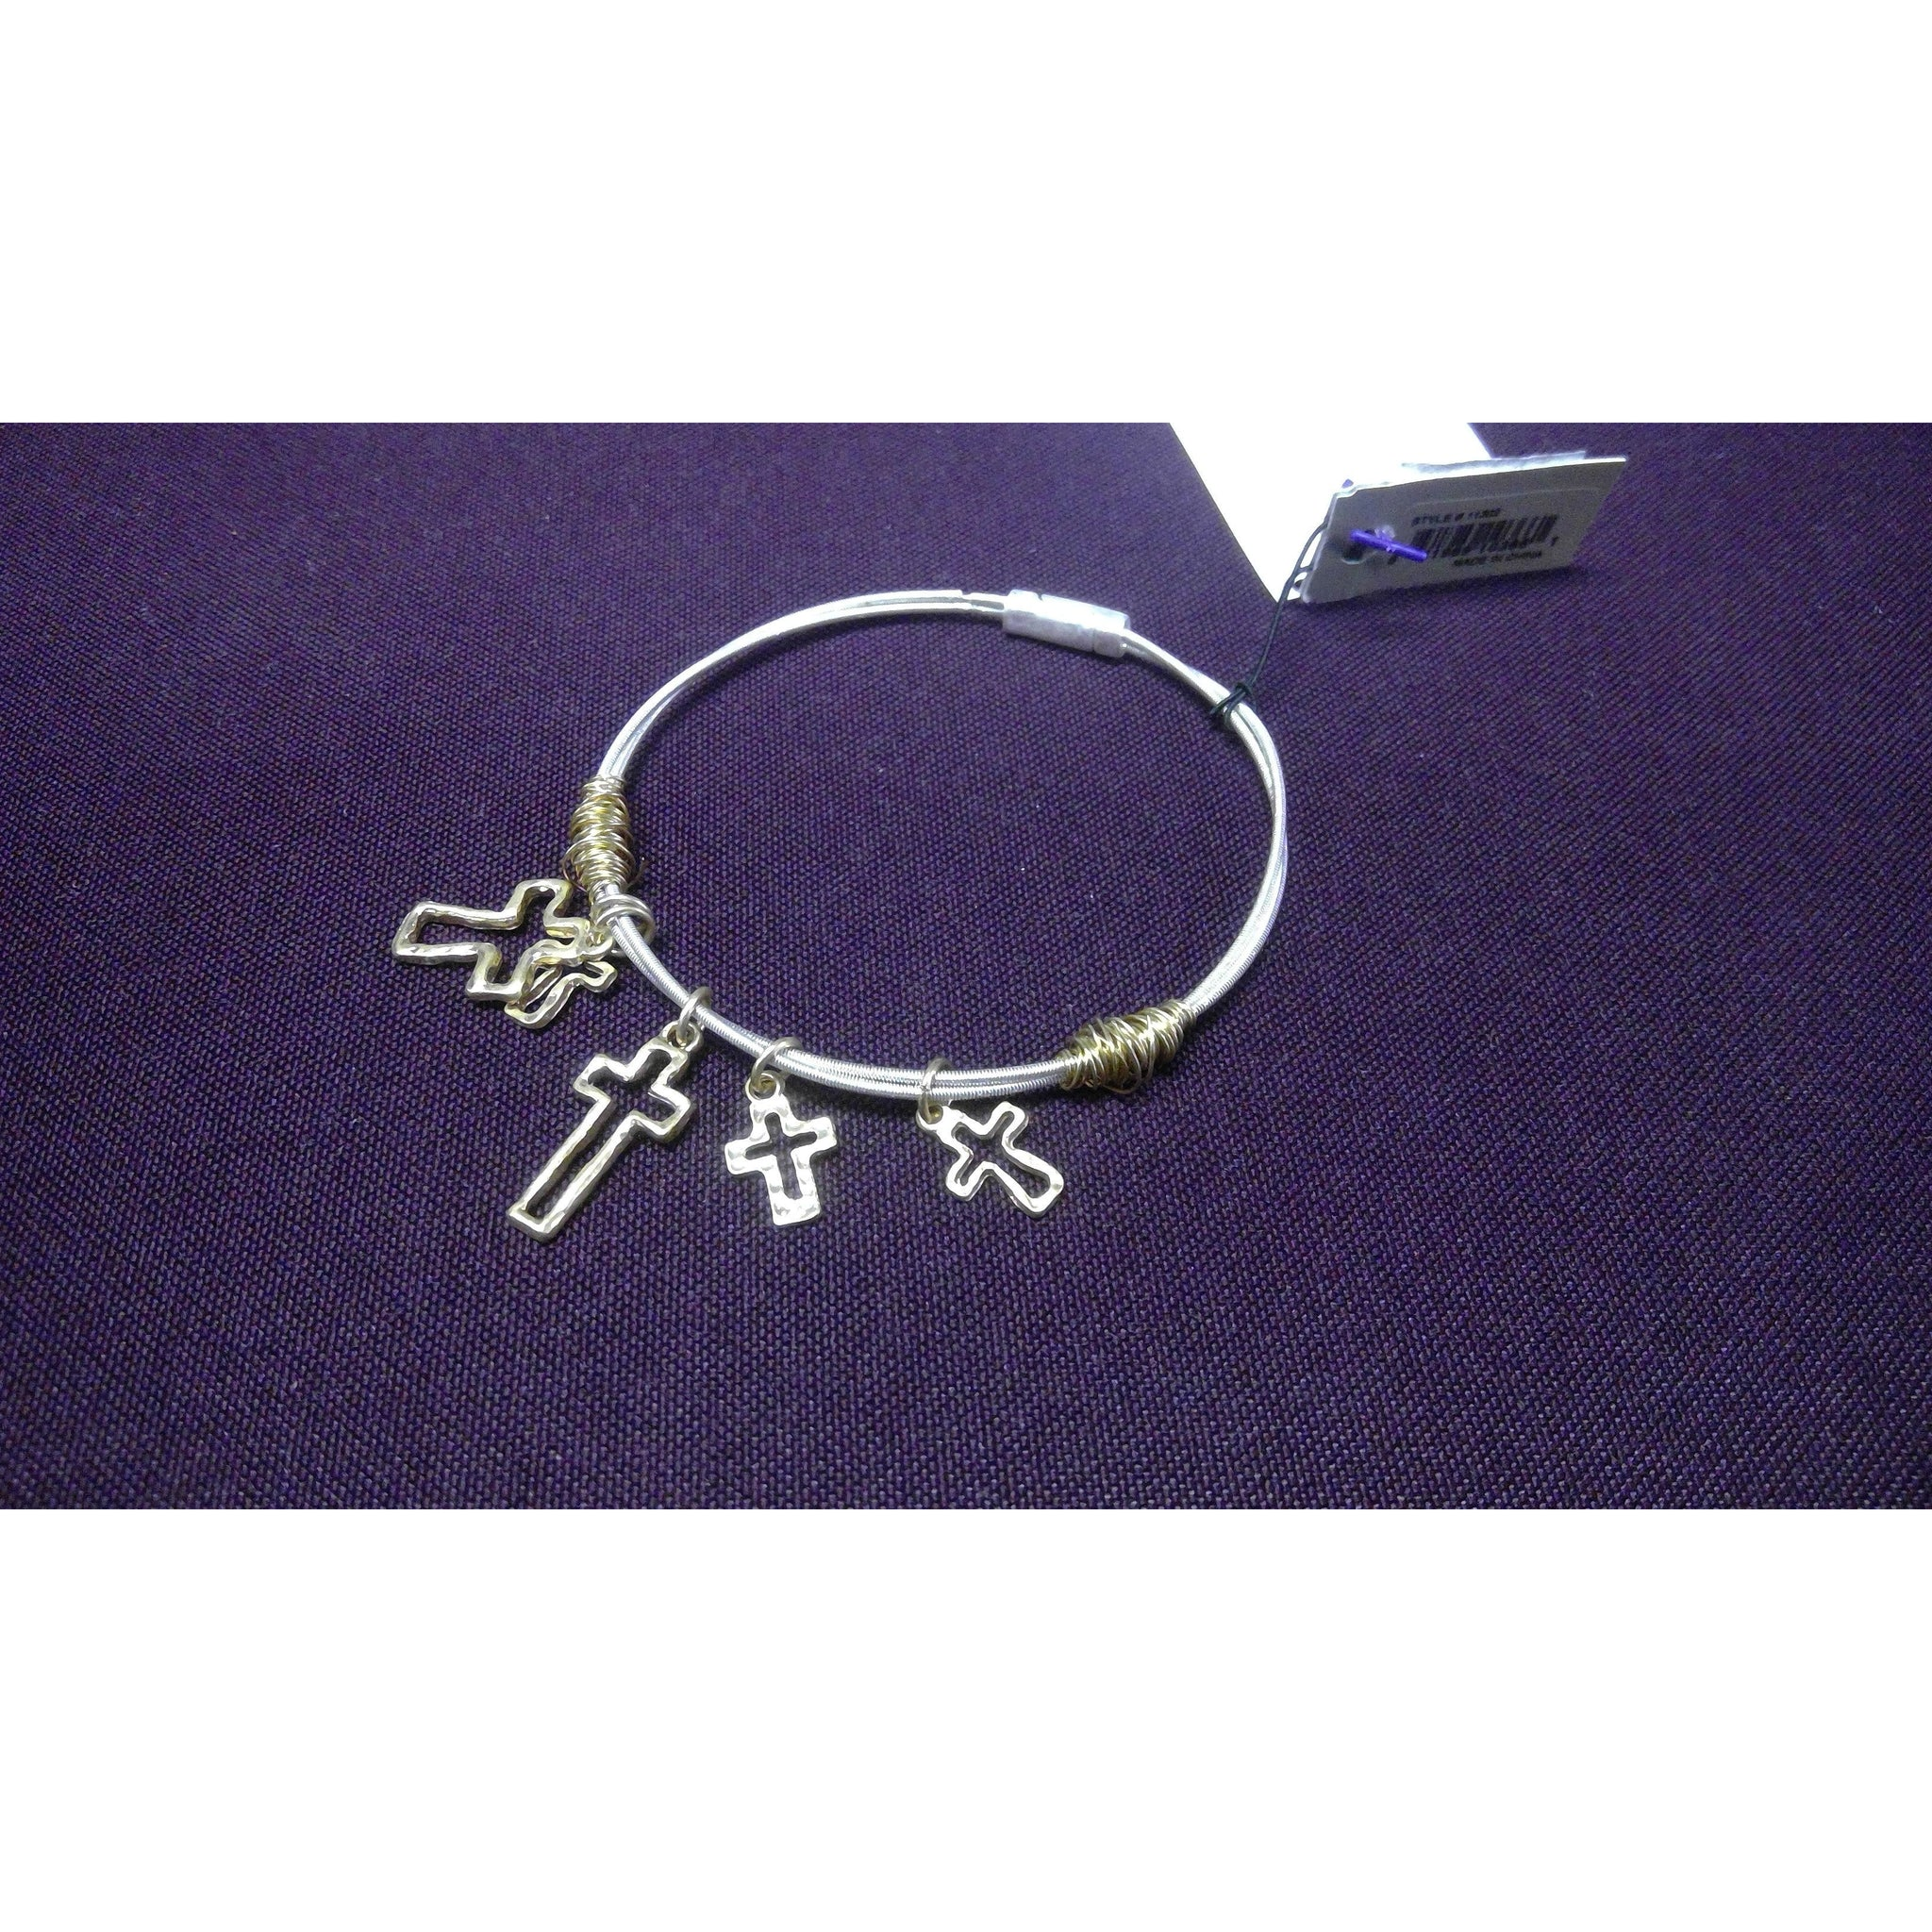 Wired Open Cross Charm Bangle